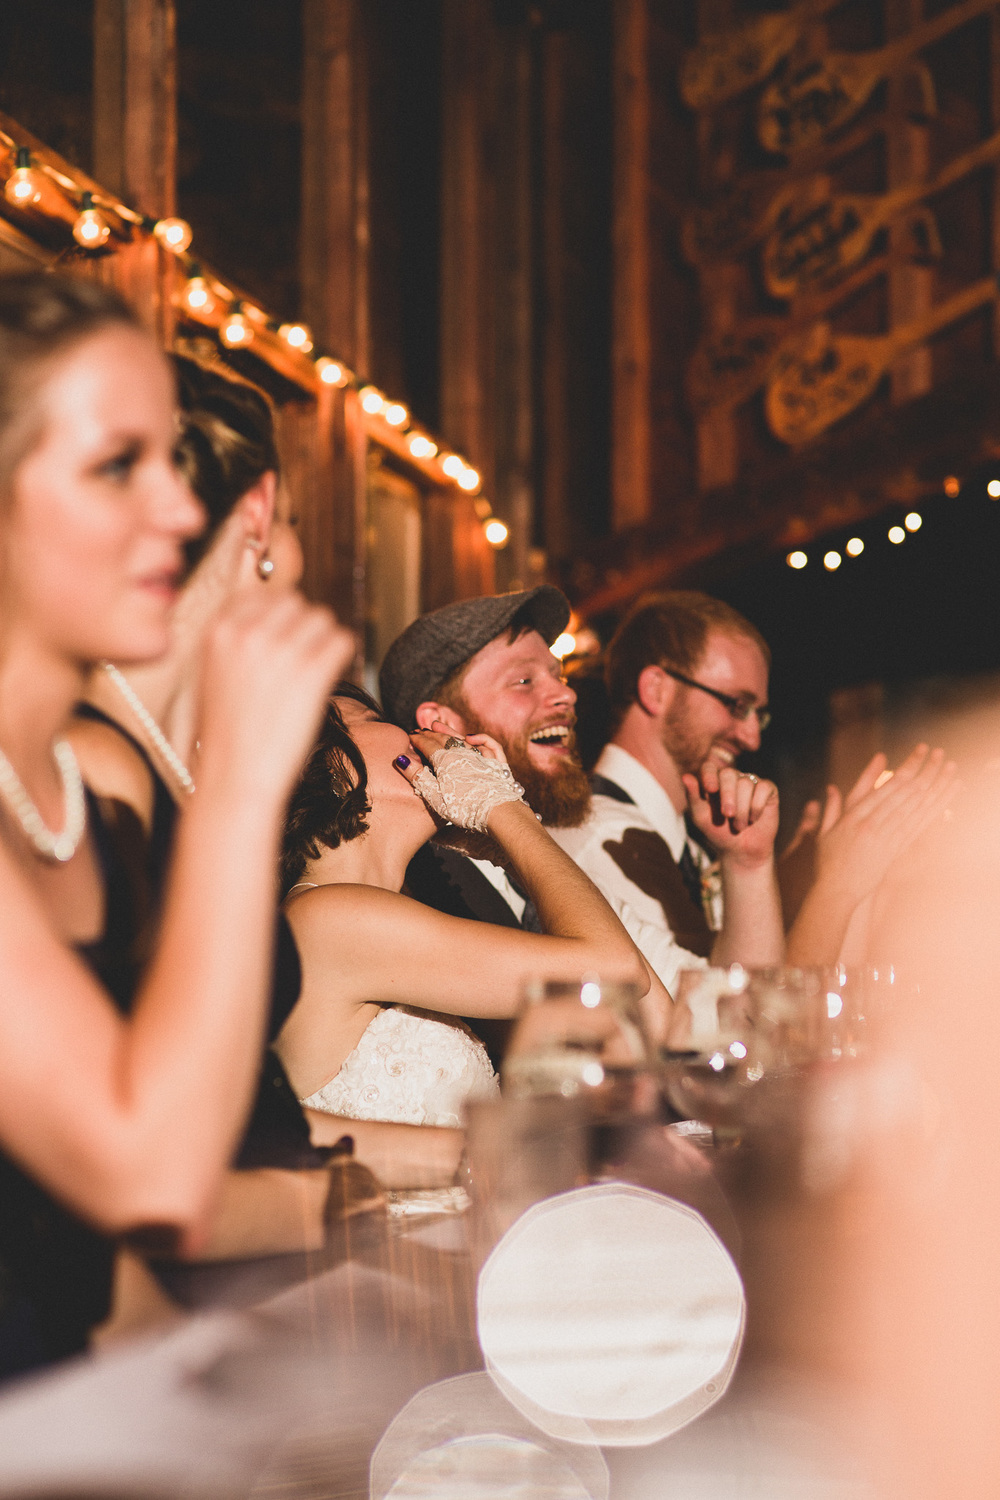 Candid, natural, emotional wedding photography